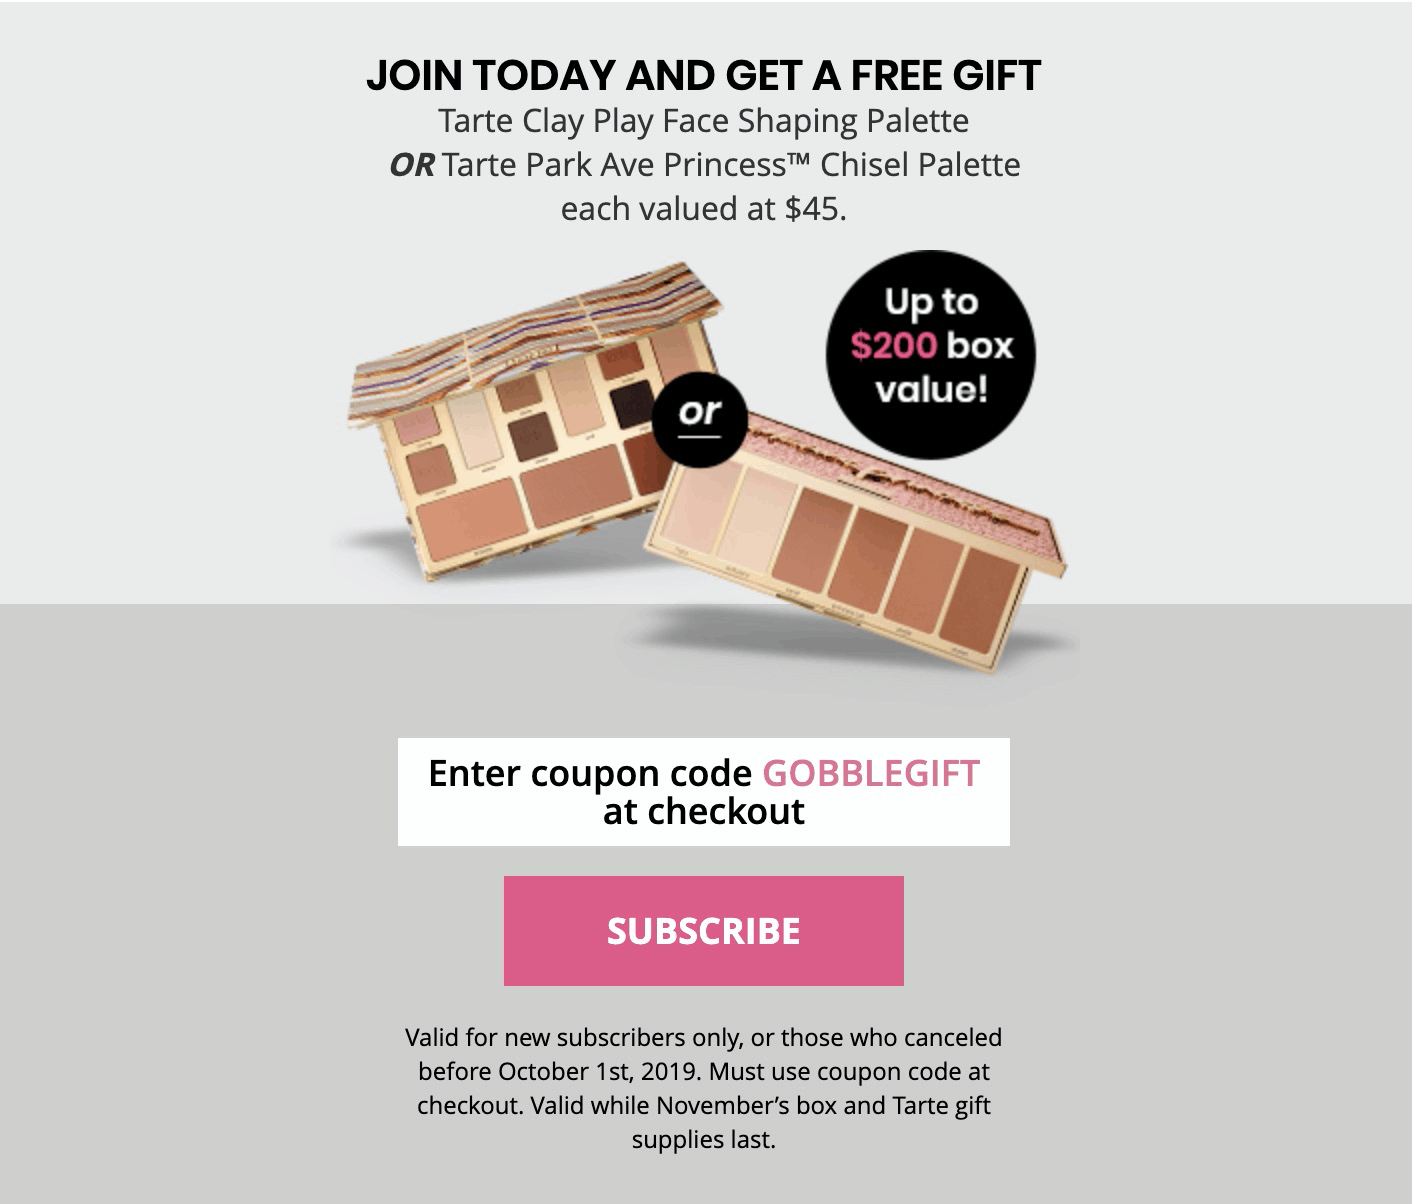 BOXYCHARM Coupon: FREE Tarte Clay Play Face Shaping Palette OR Tarte Park Ave Princess Chisel Palette ($45 Value)!